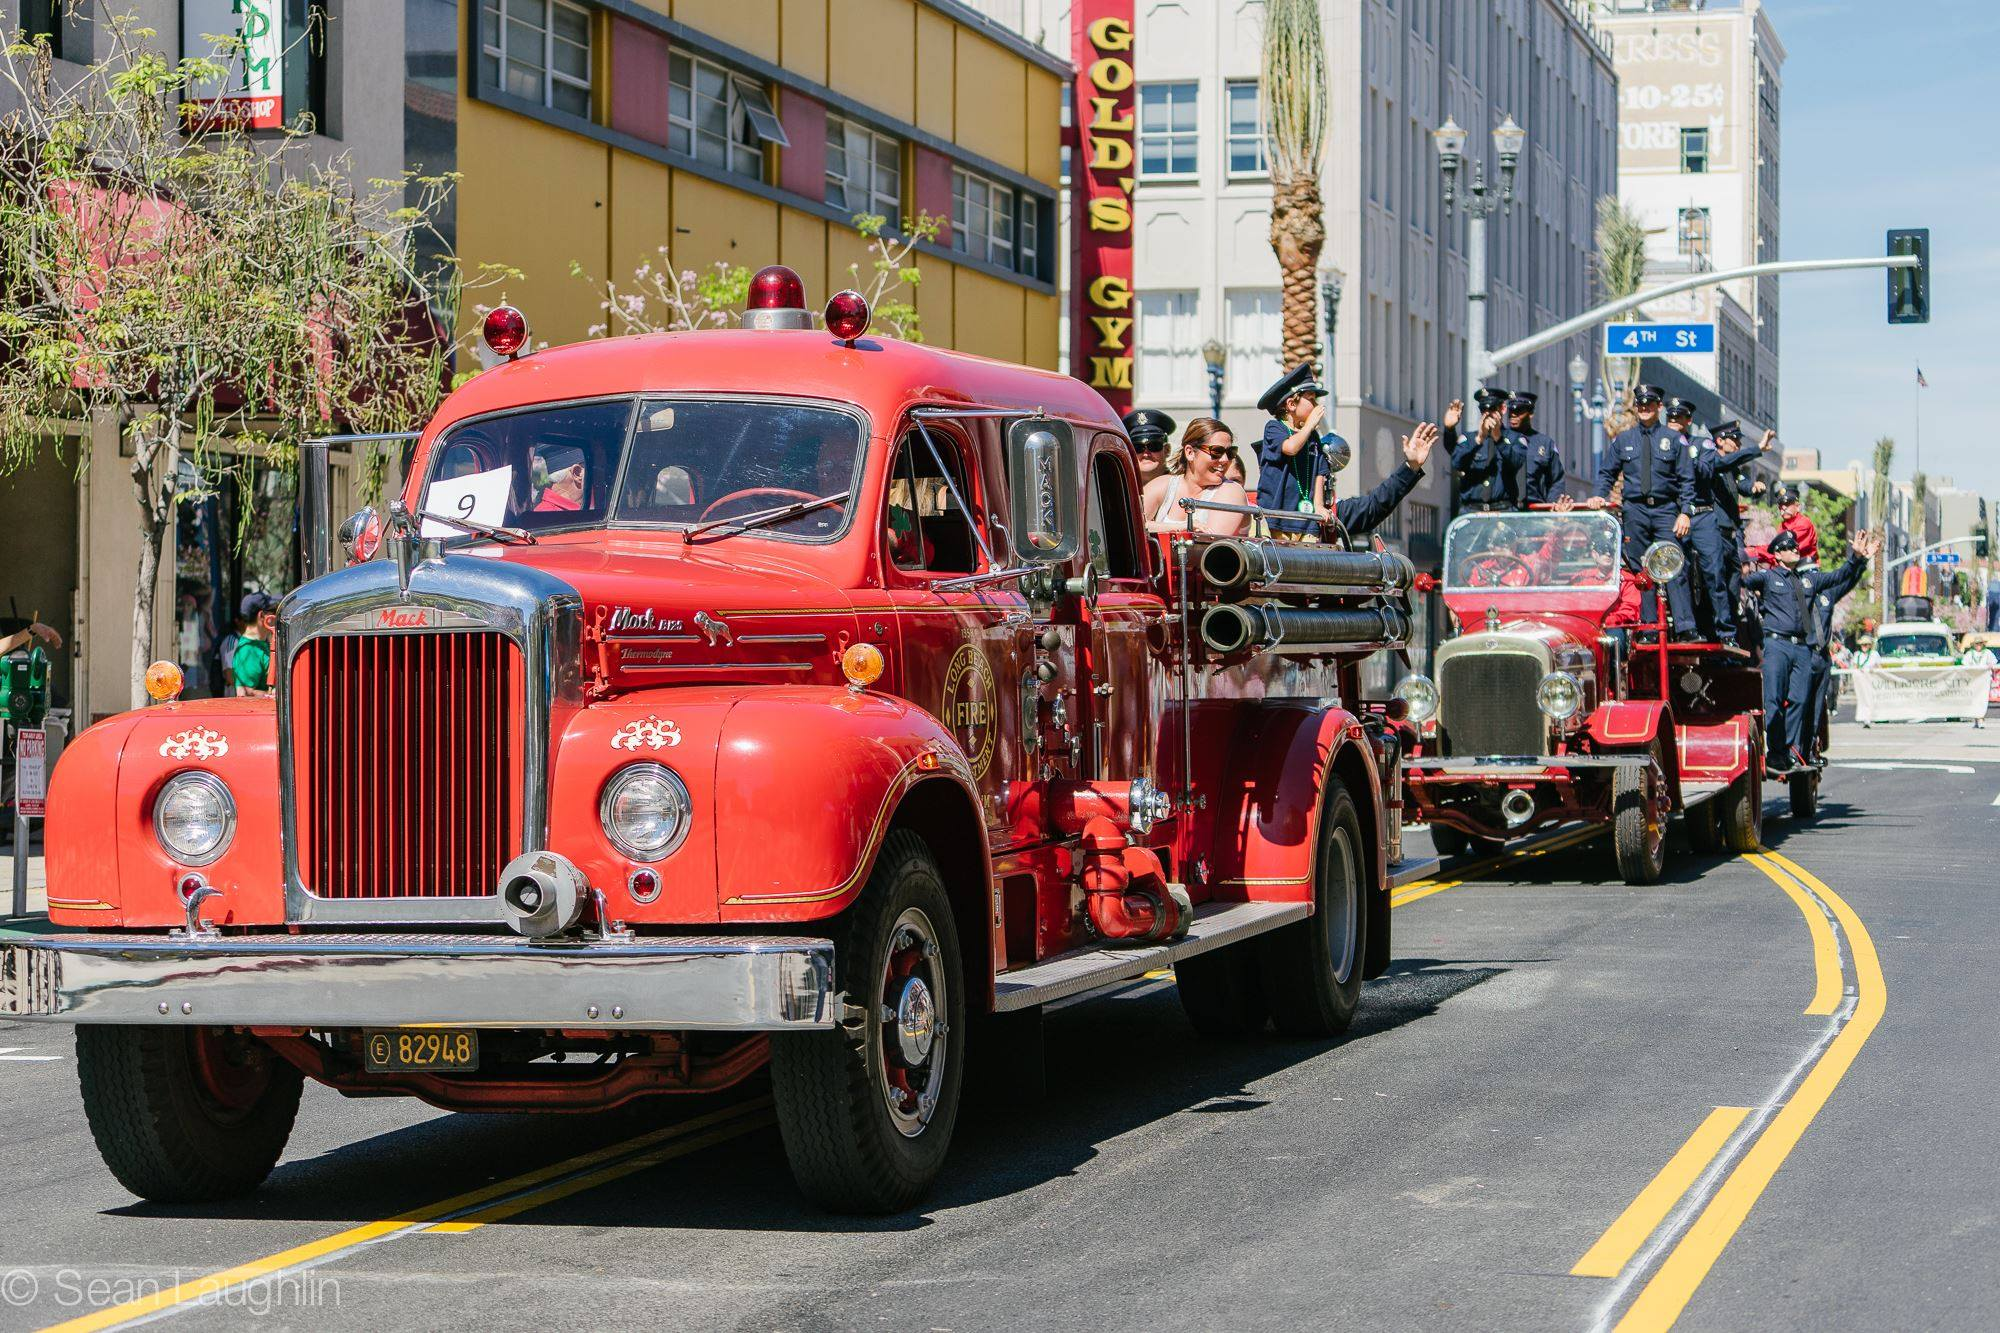 Firefighters and vintage vehicles participating in a local parade